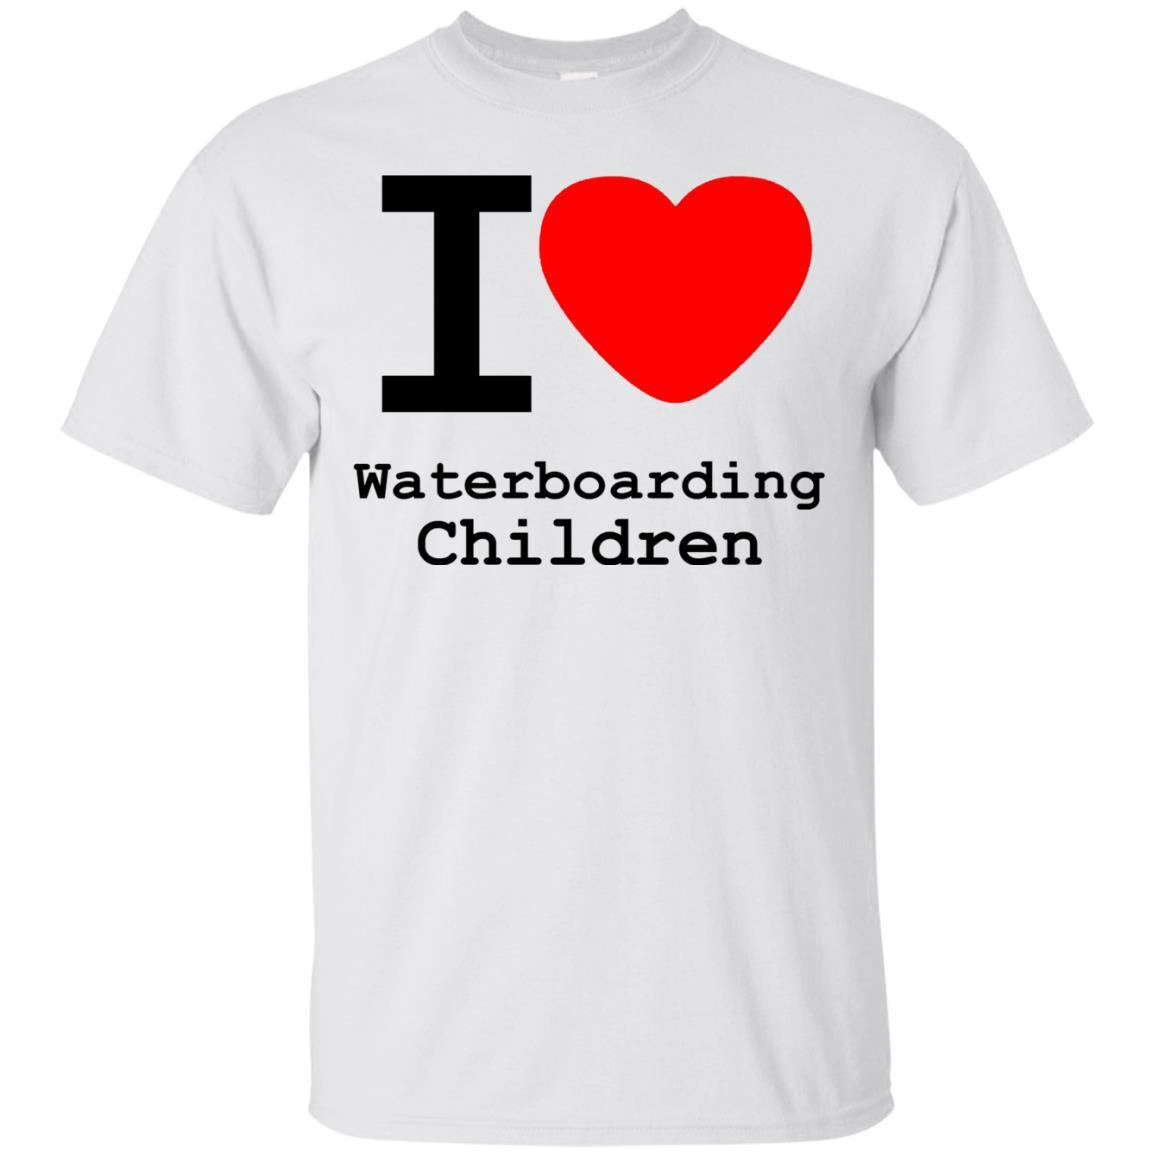 I love Waterboarding Children T Shirt White / 5XL